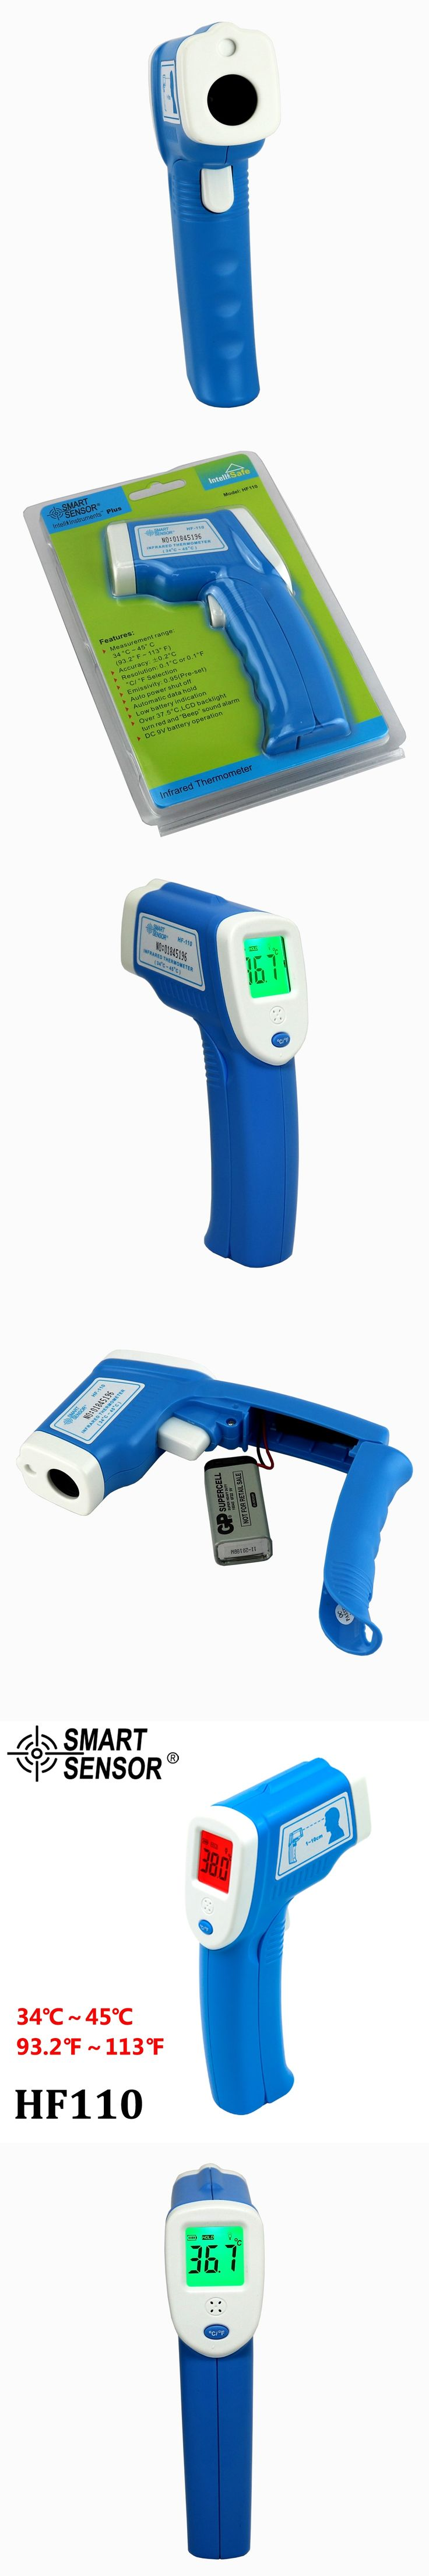 Smart Sensor HF110 Digital Infrared Thermometer LCD Non-contact IR Forehead Body Surface Temperature Measurement Gun tester